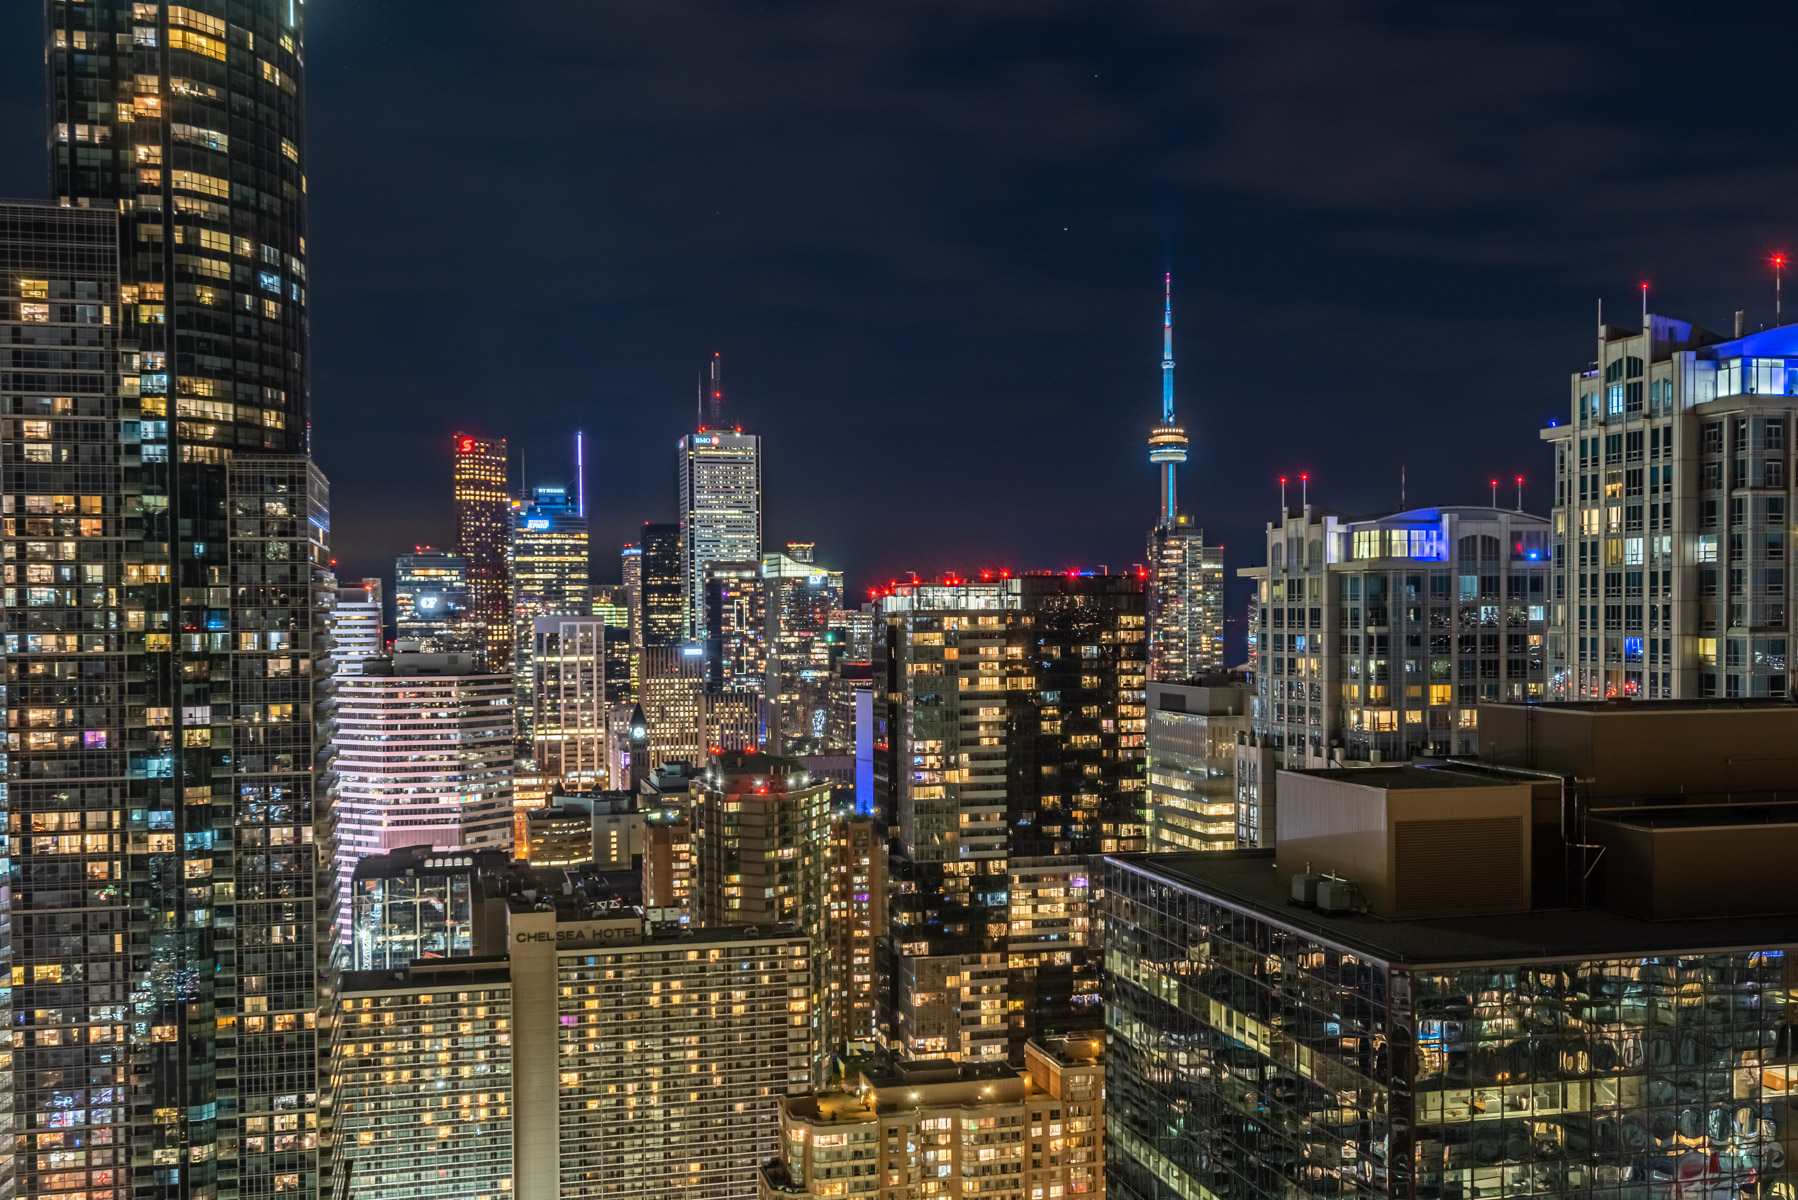 Toronto skyline at night with bright lights and tall buildings.